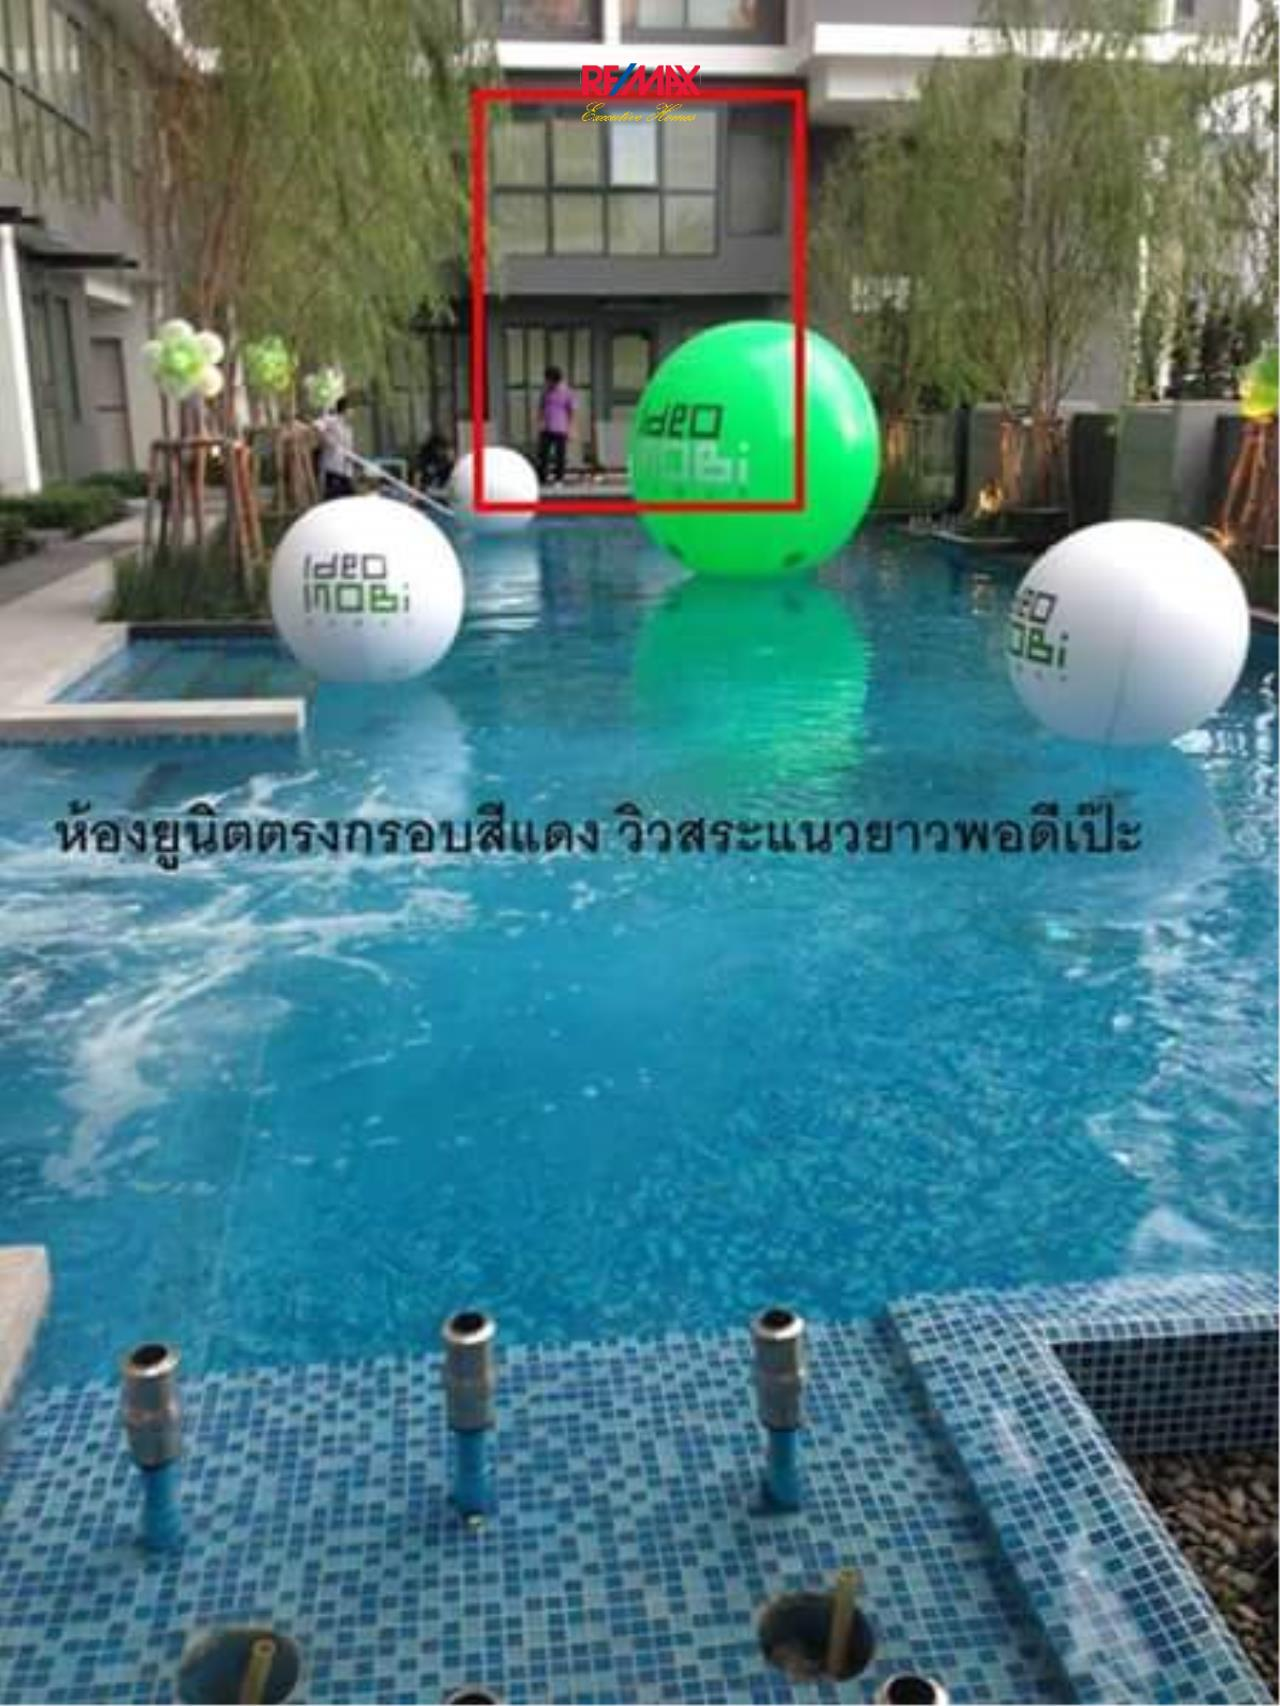 RE/MAX Executive Homes Agency's Beautiful 1 Bedroom Duplex for Sale with Tenant Ideo Mobi Rama 9 8